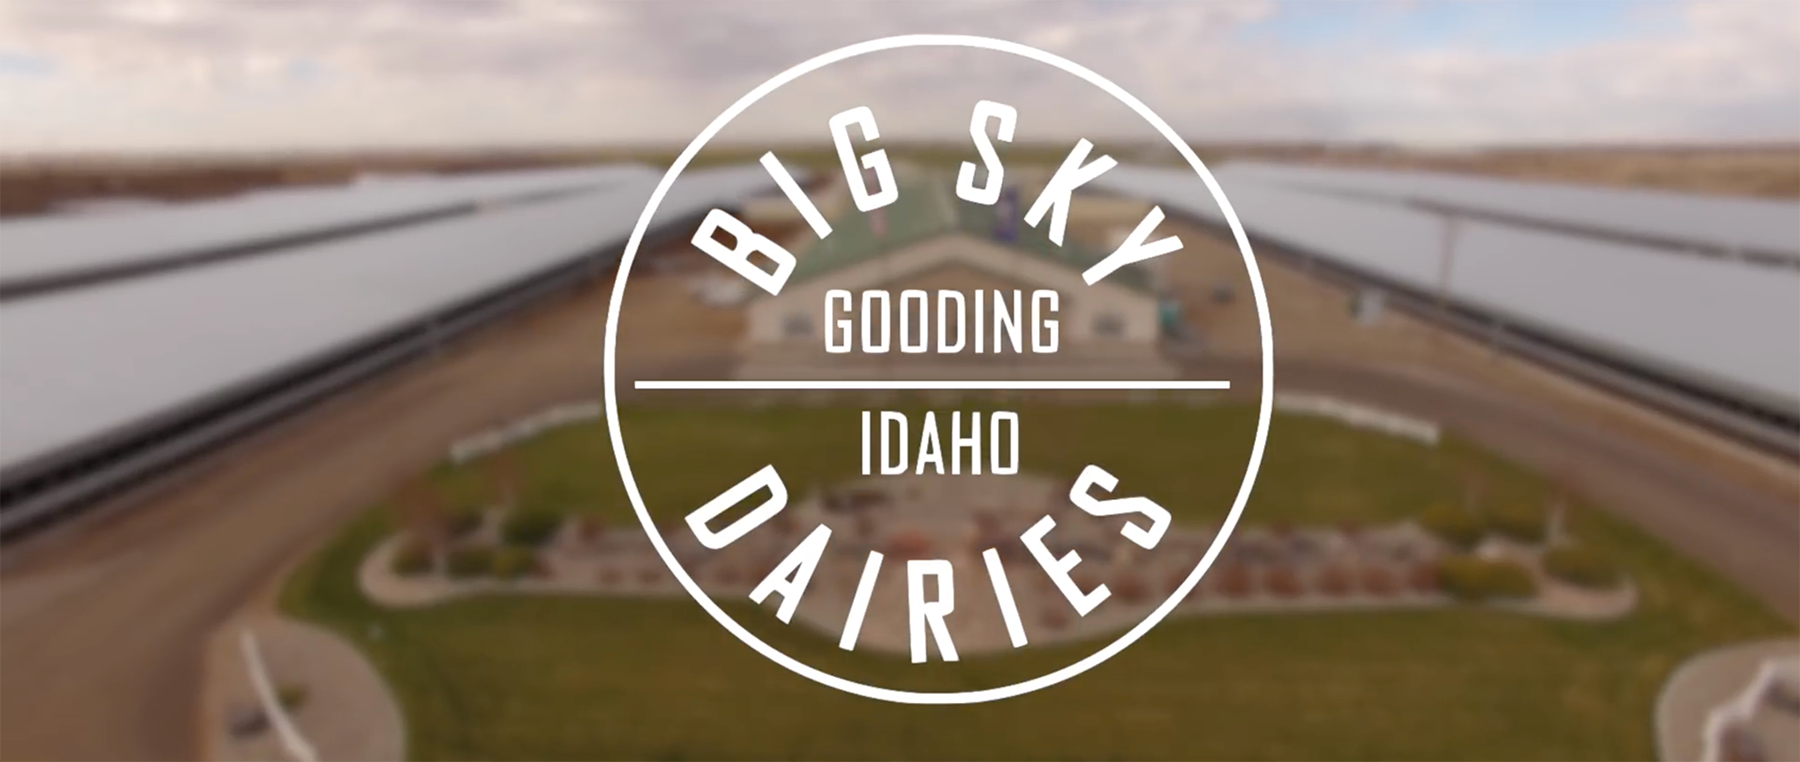 Big Sky Dairies